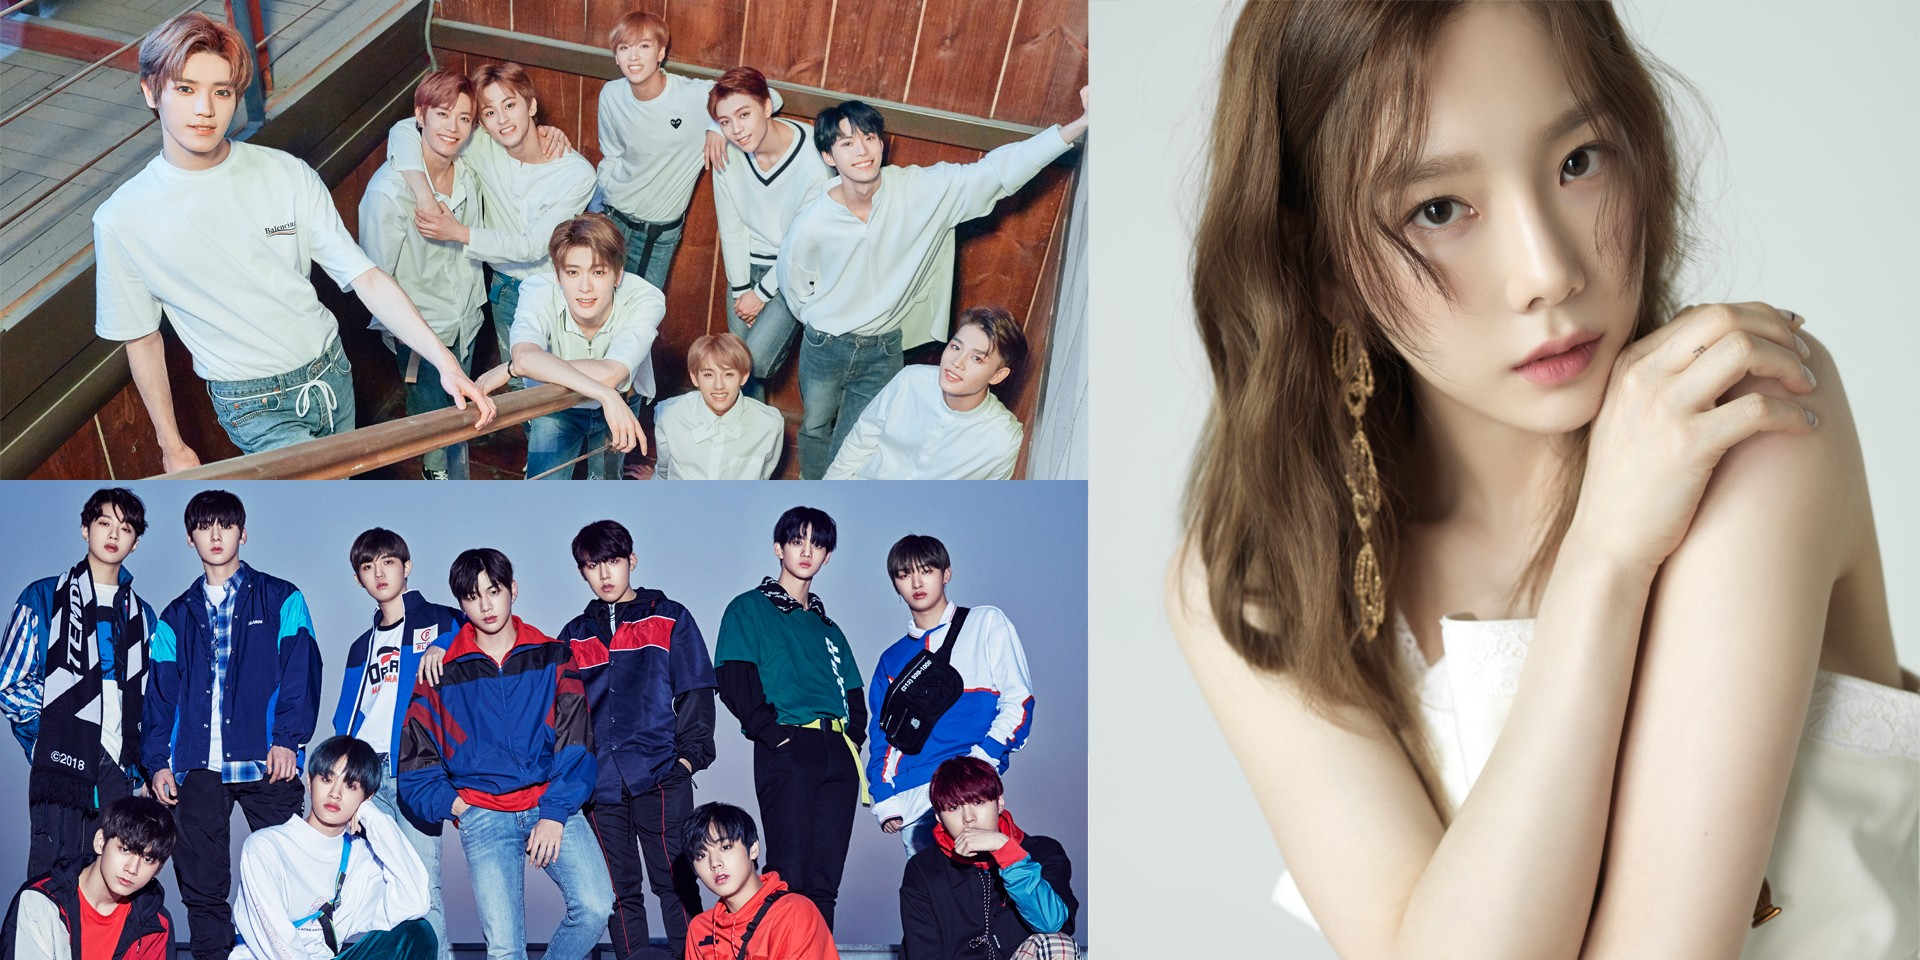 HallyuPopFest unveils full lineup, including Wanna One, NCT 127 and TAEYEON